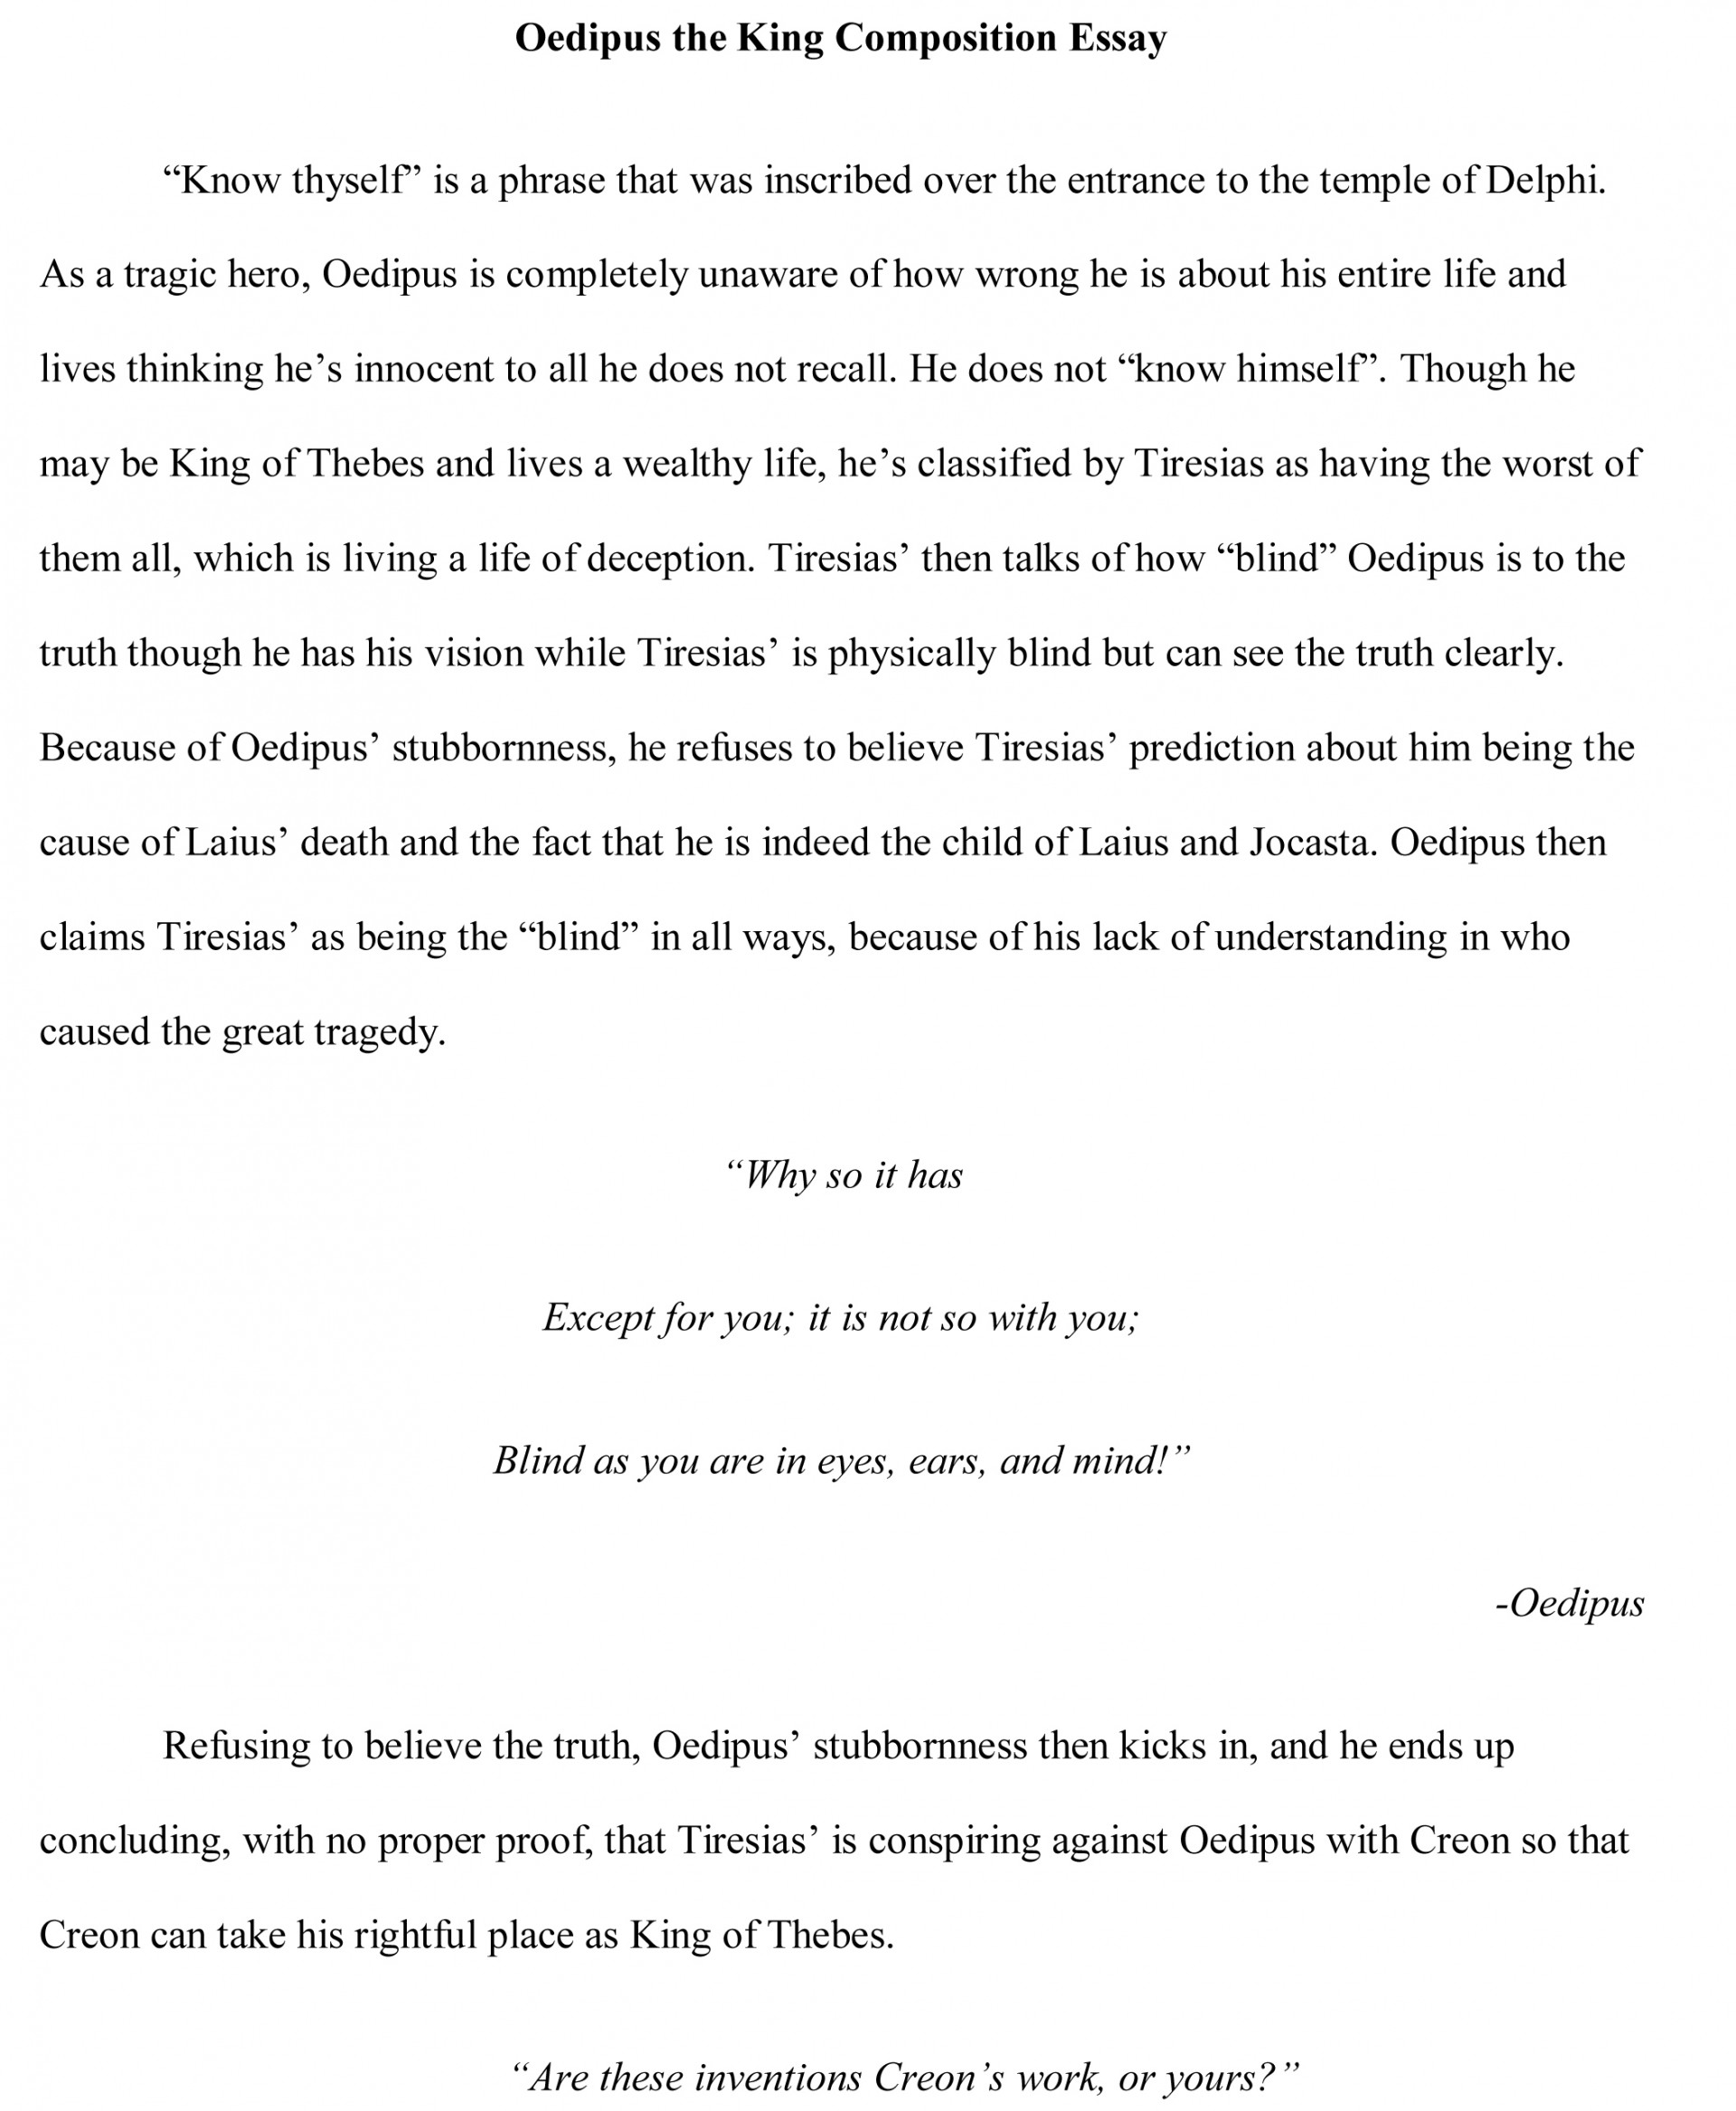 008 How To Make Persuasive Essay Oedipus Free Sample Amazing A Write In Apa Format Longer Introduction 1920